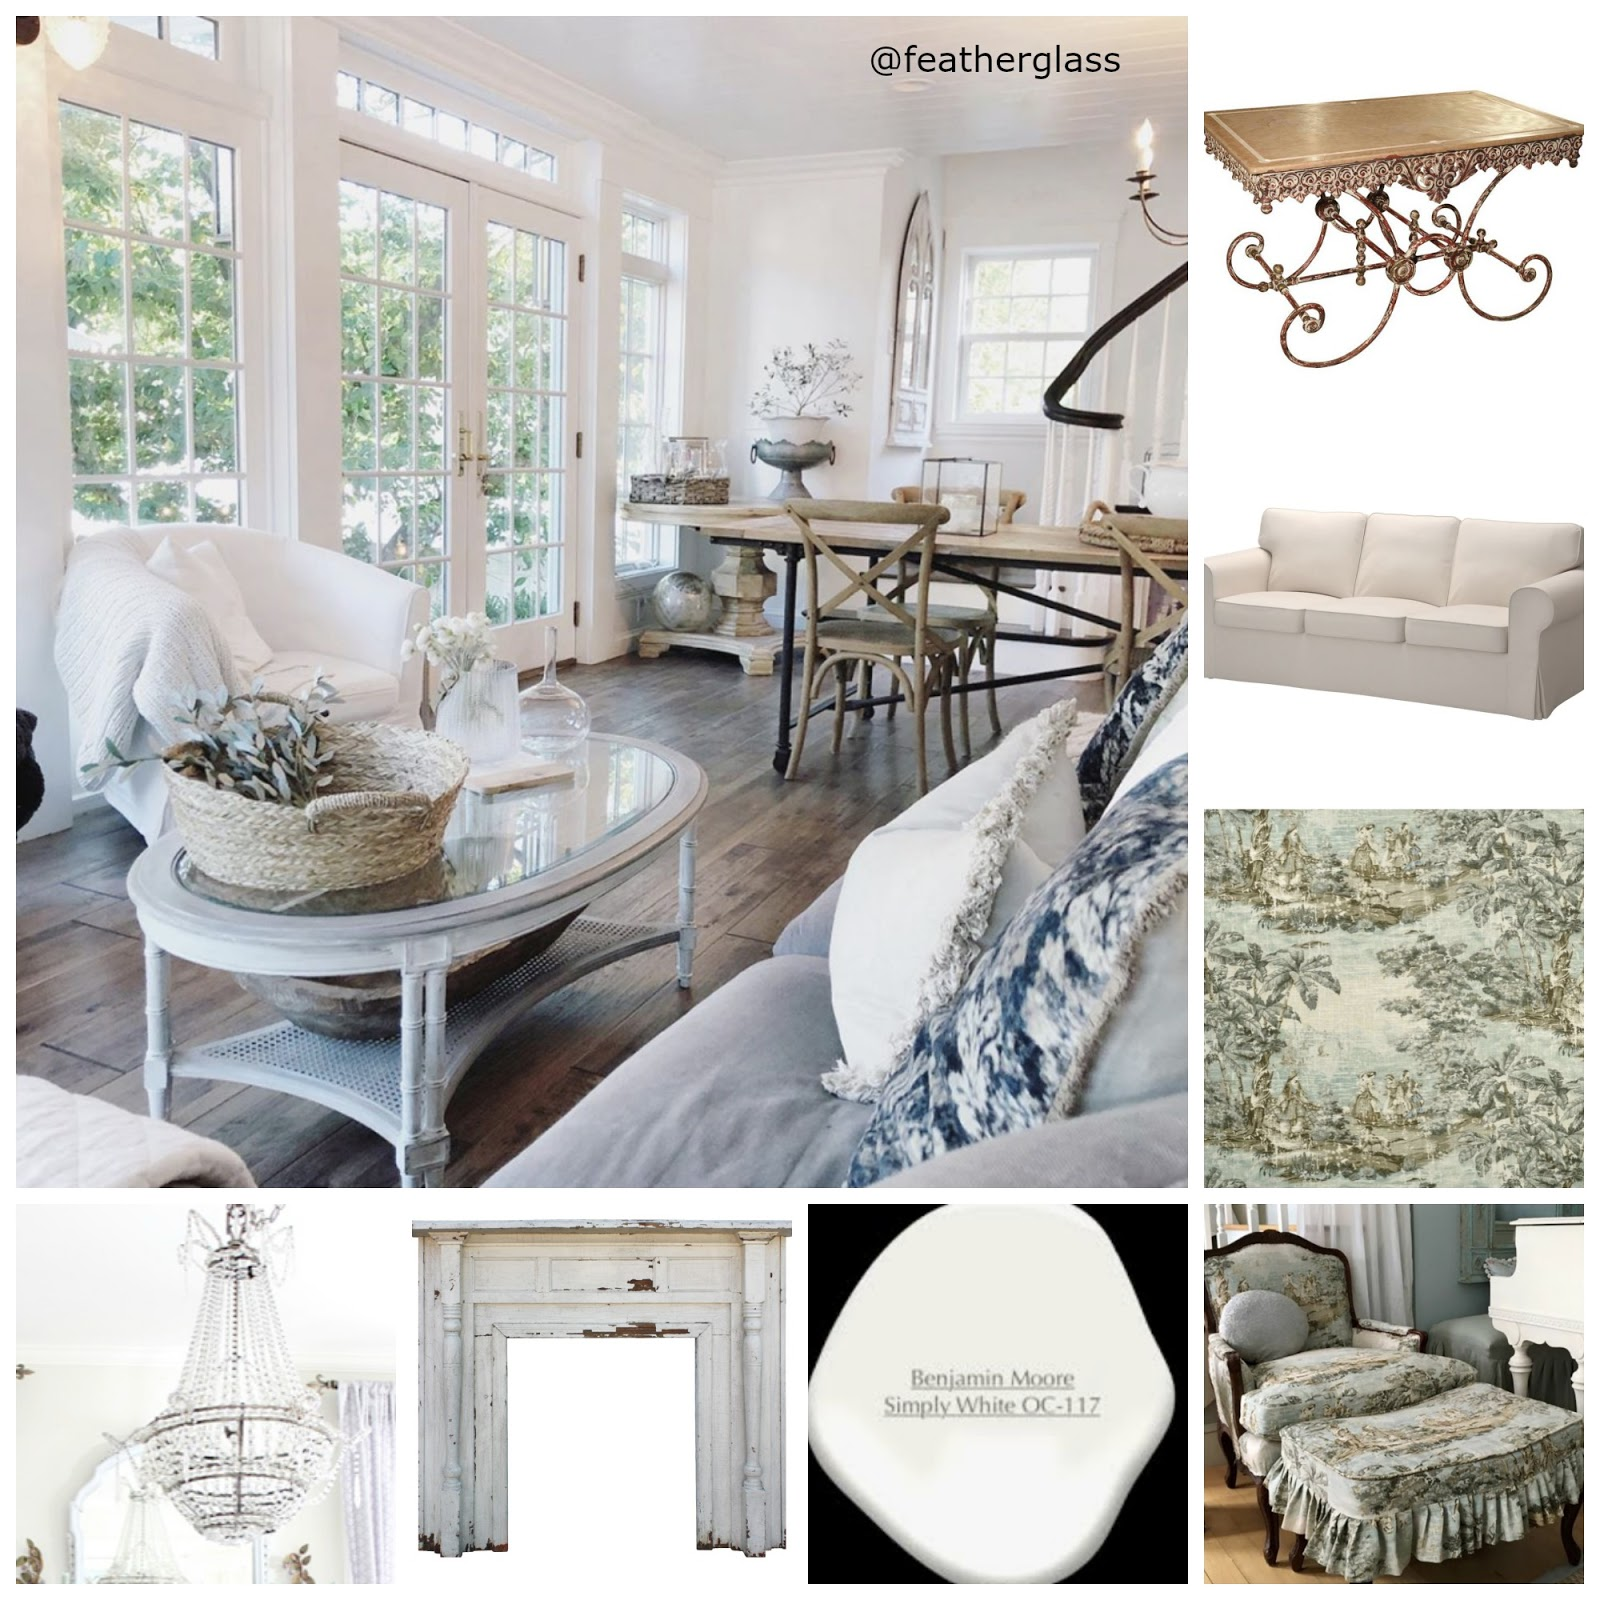 Maison Decor: Our Lake House Inspiration Board